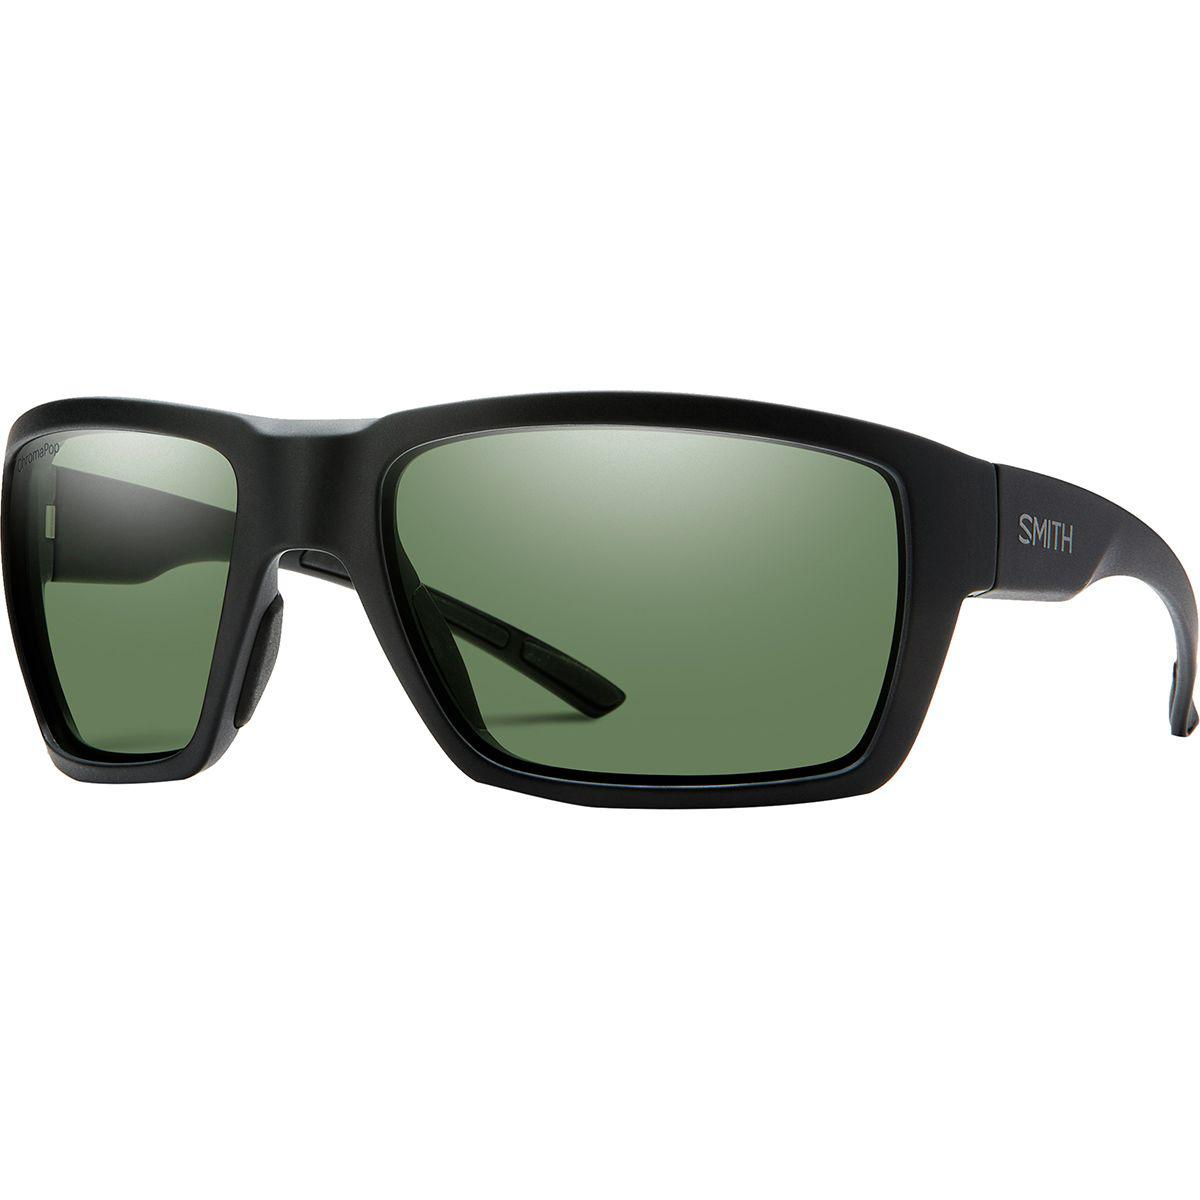 8afe3e966c7 Lyst - Smith Highwater Chromapop+ Polarized Sunglasses in Green for ...